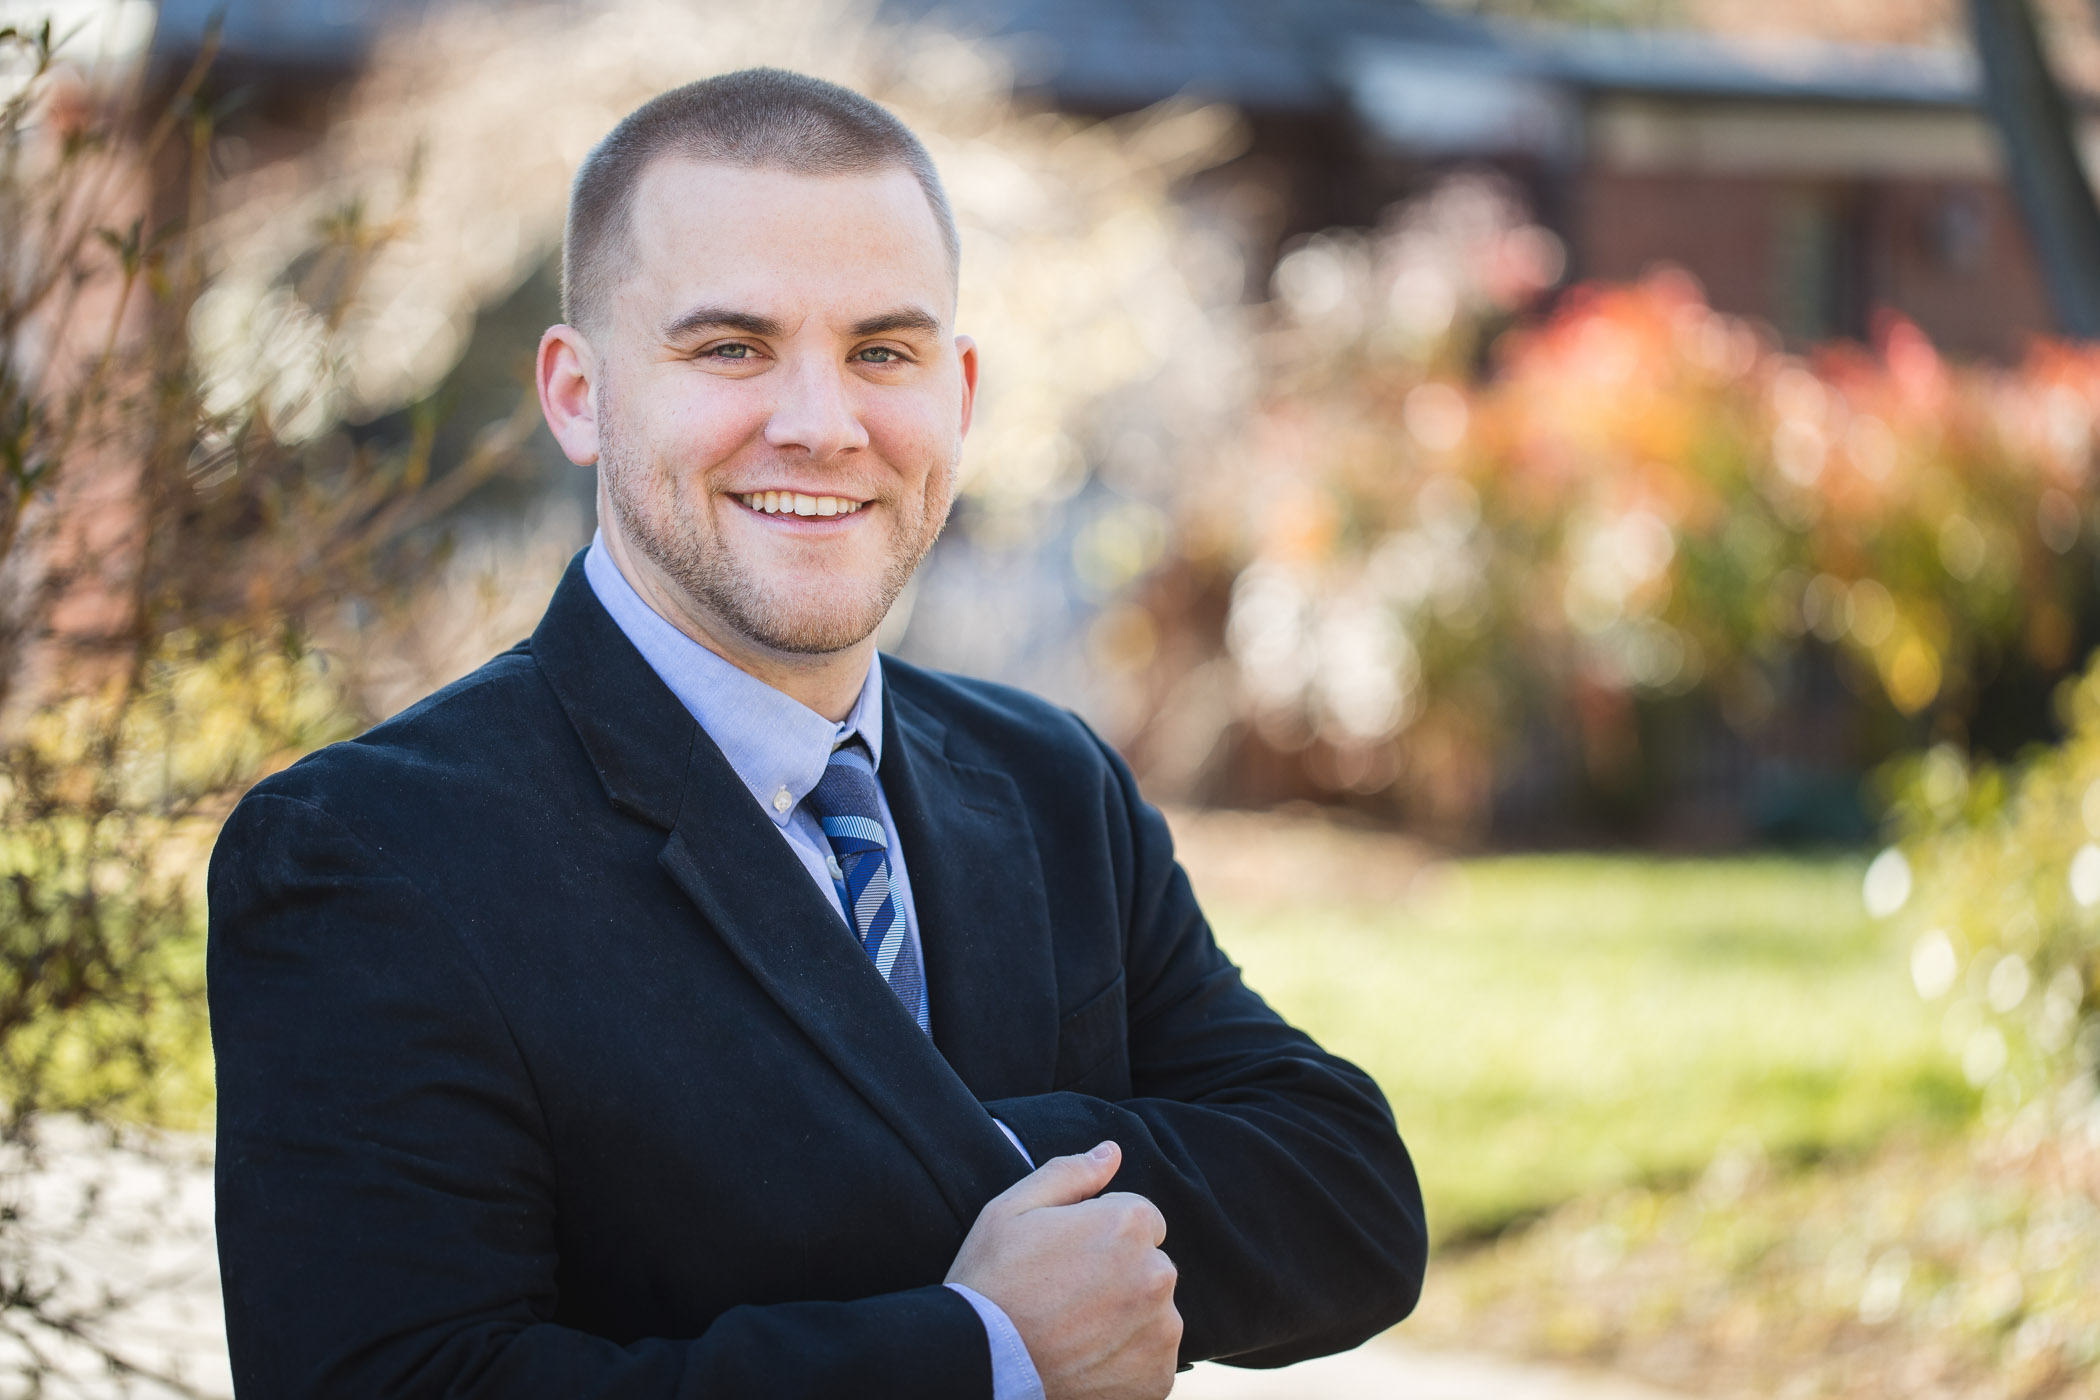 Last Minute Headshots for a Real Estate Agent in a Hurry